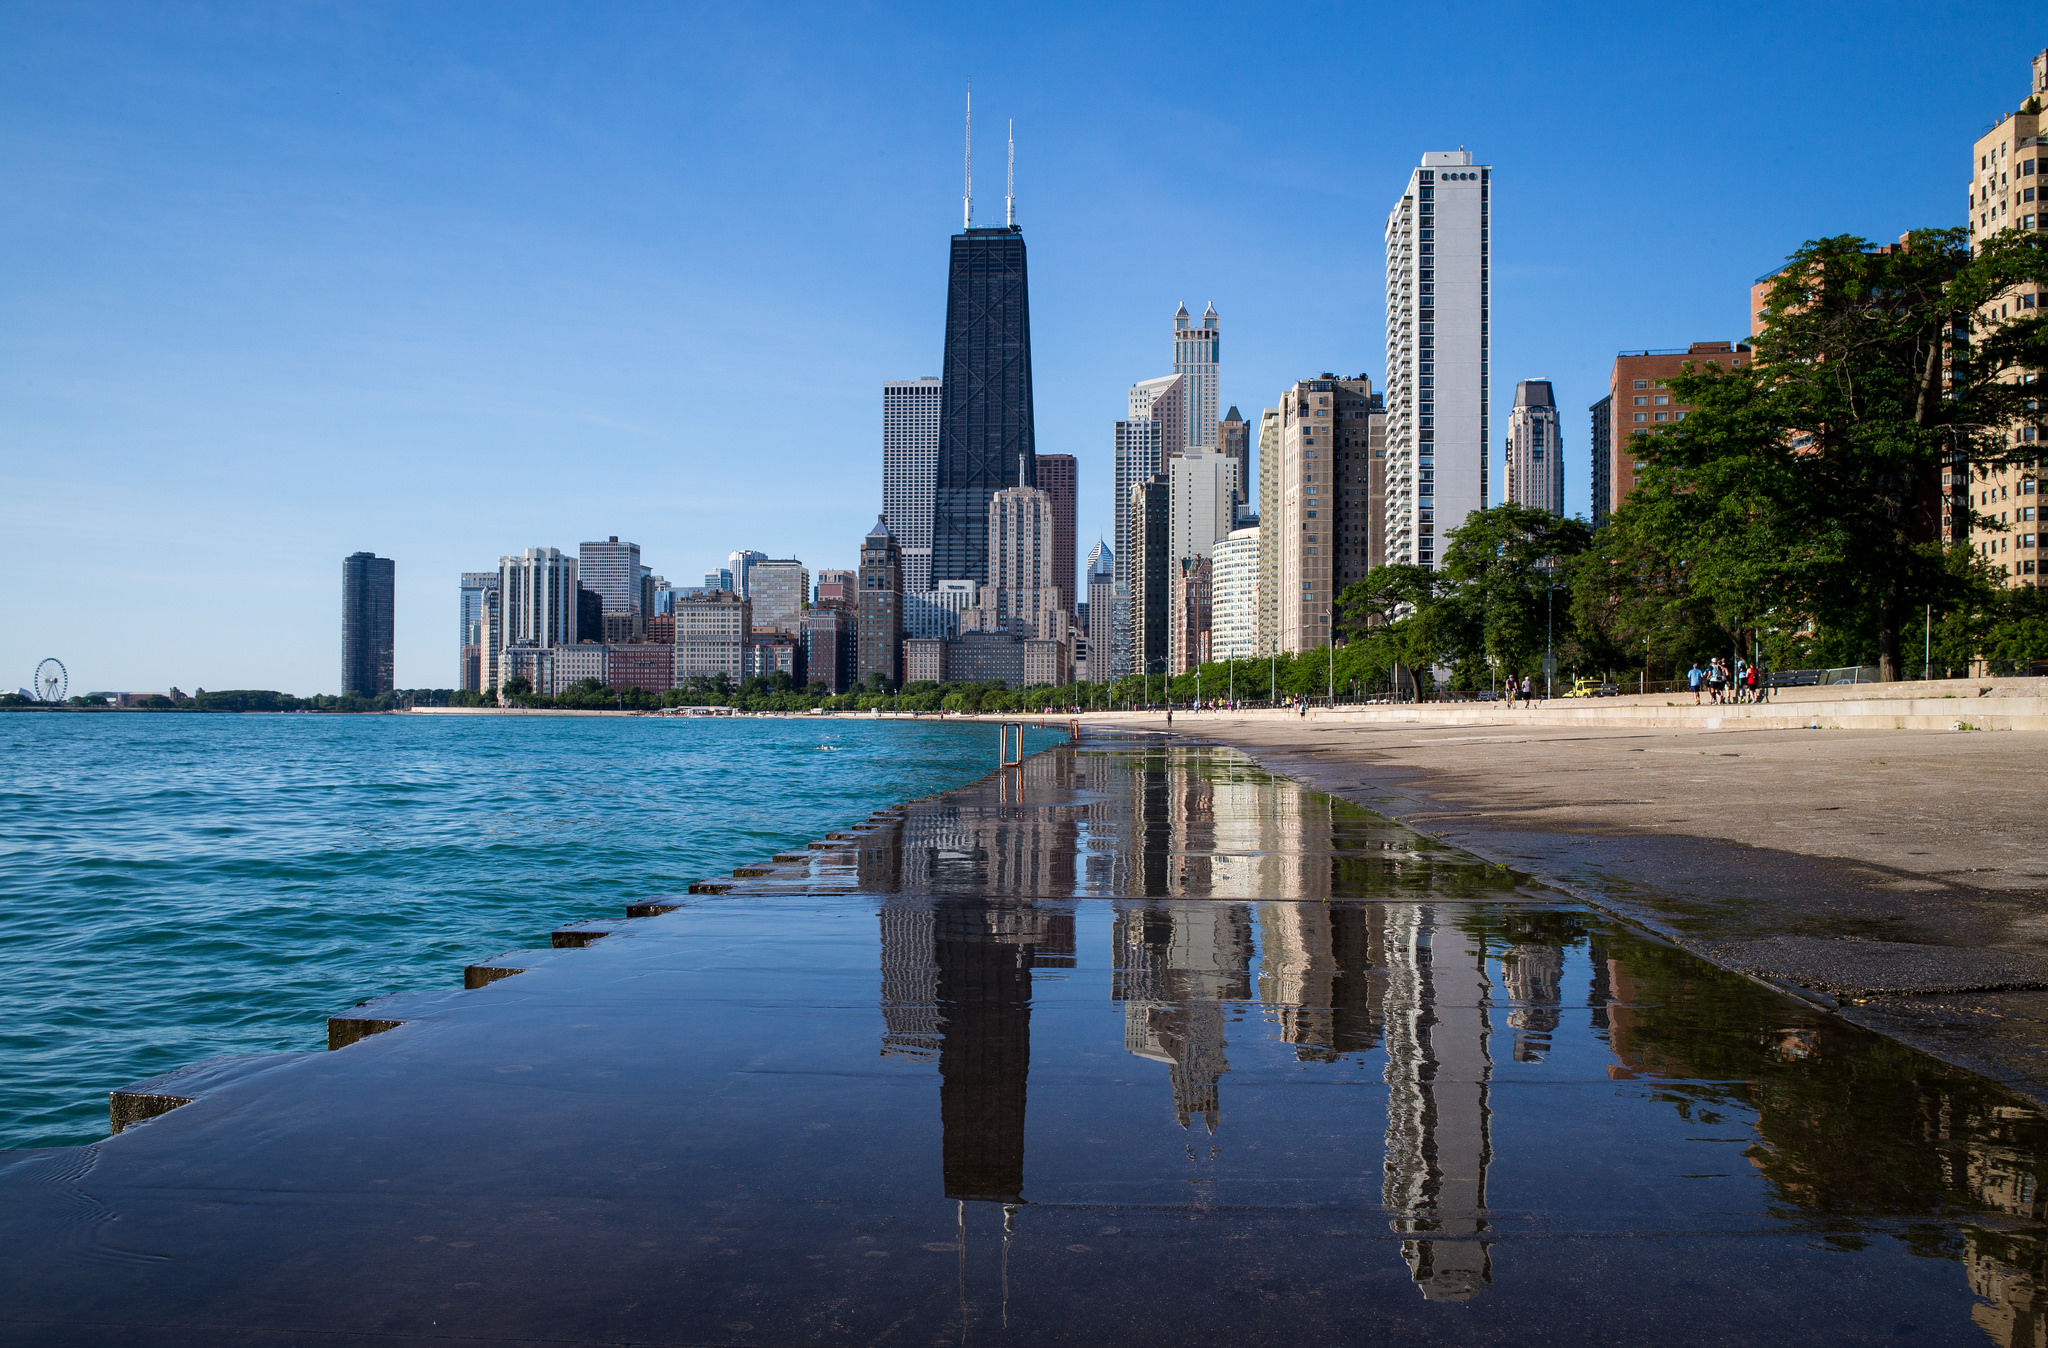 Other objectives include expanding Illinois' Renewable Portfolio Standard (RPS) from its current requirement of 25% of renewable energy by 2025 to 40% renewables by 2030. Image: Roman Boed / Flickr